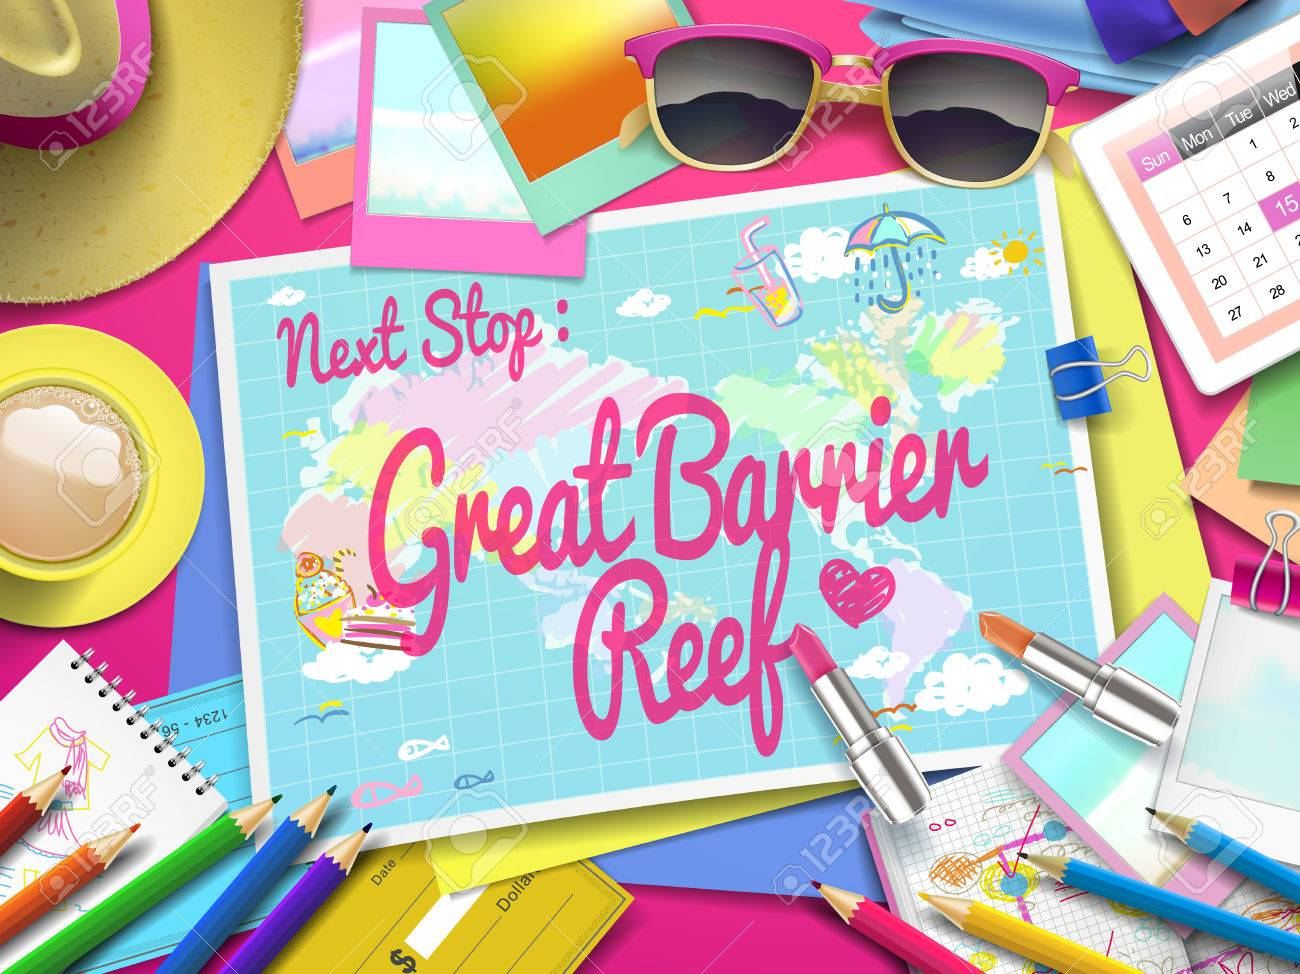 Great Barrier Reef Karte.Great Barrier Reef On Map Top View Of Colorful Travel Essentials